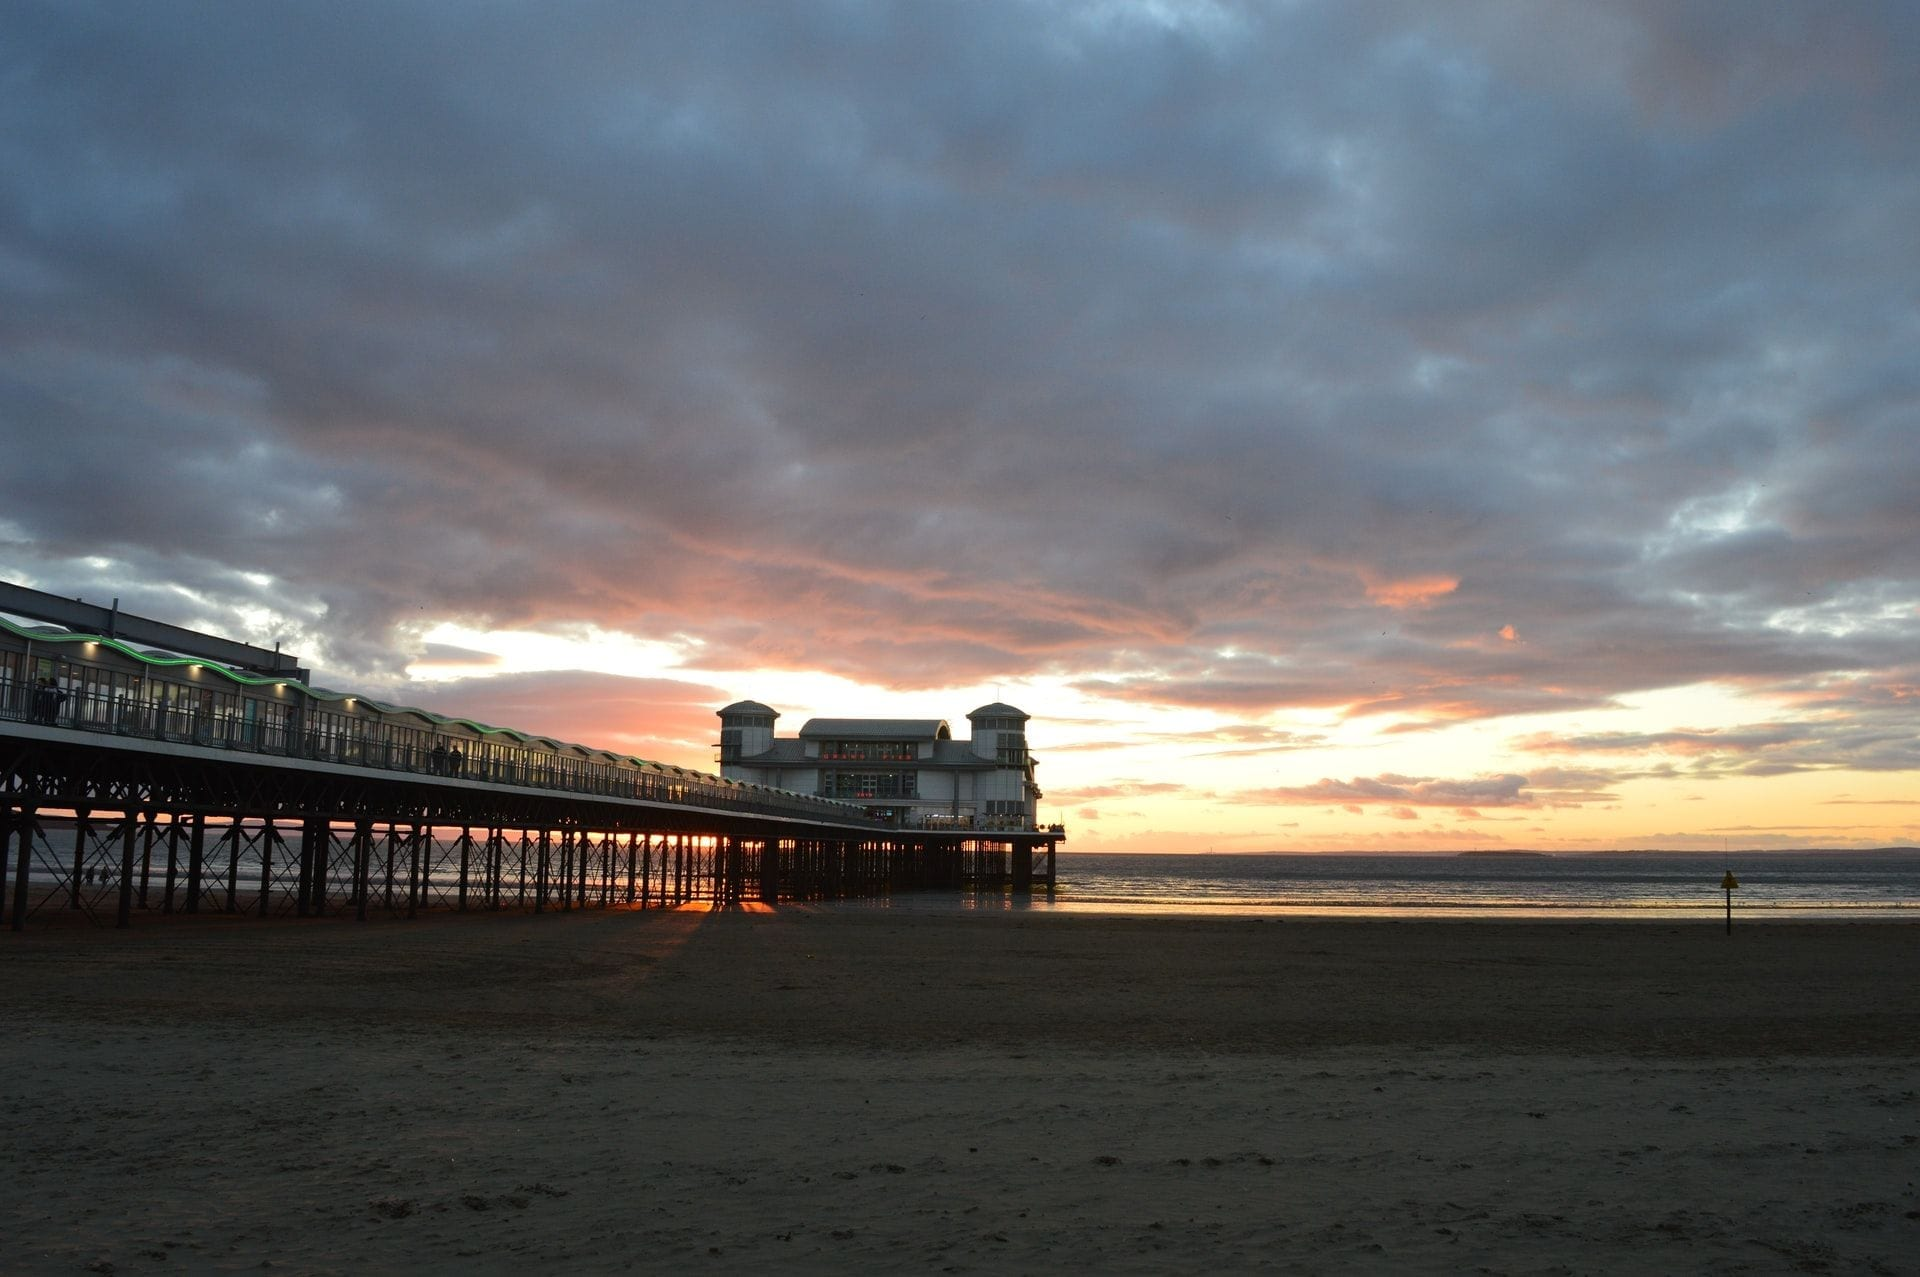 sunset-on-beach-over-pier-at-weston-super-mare